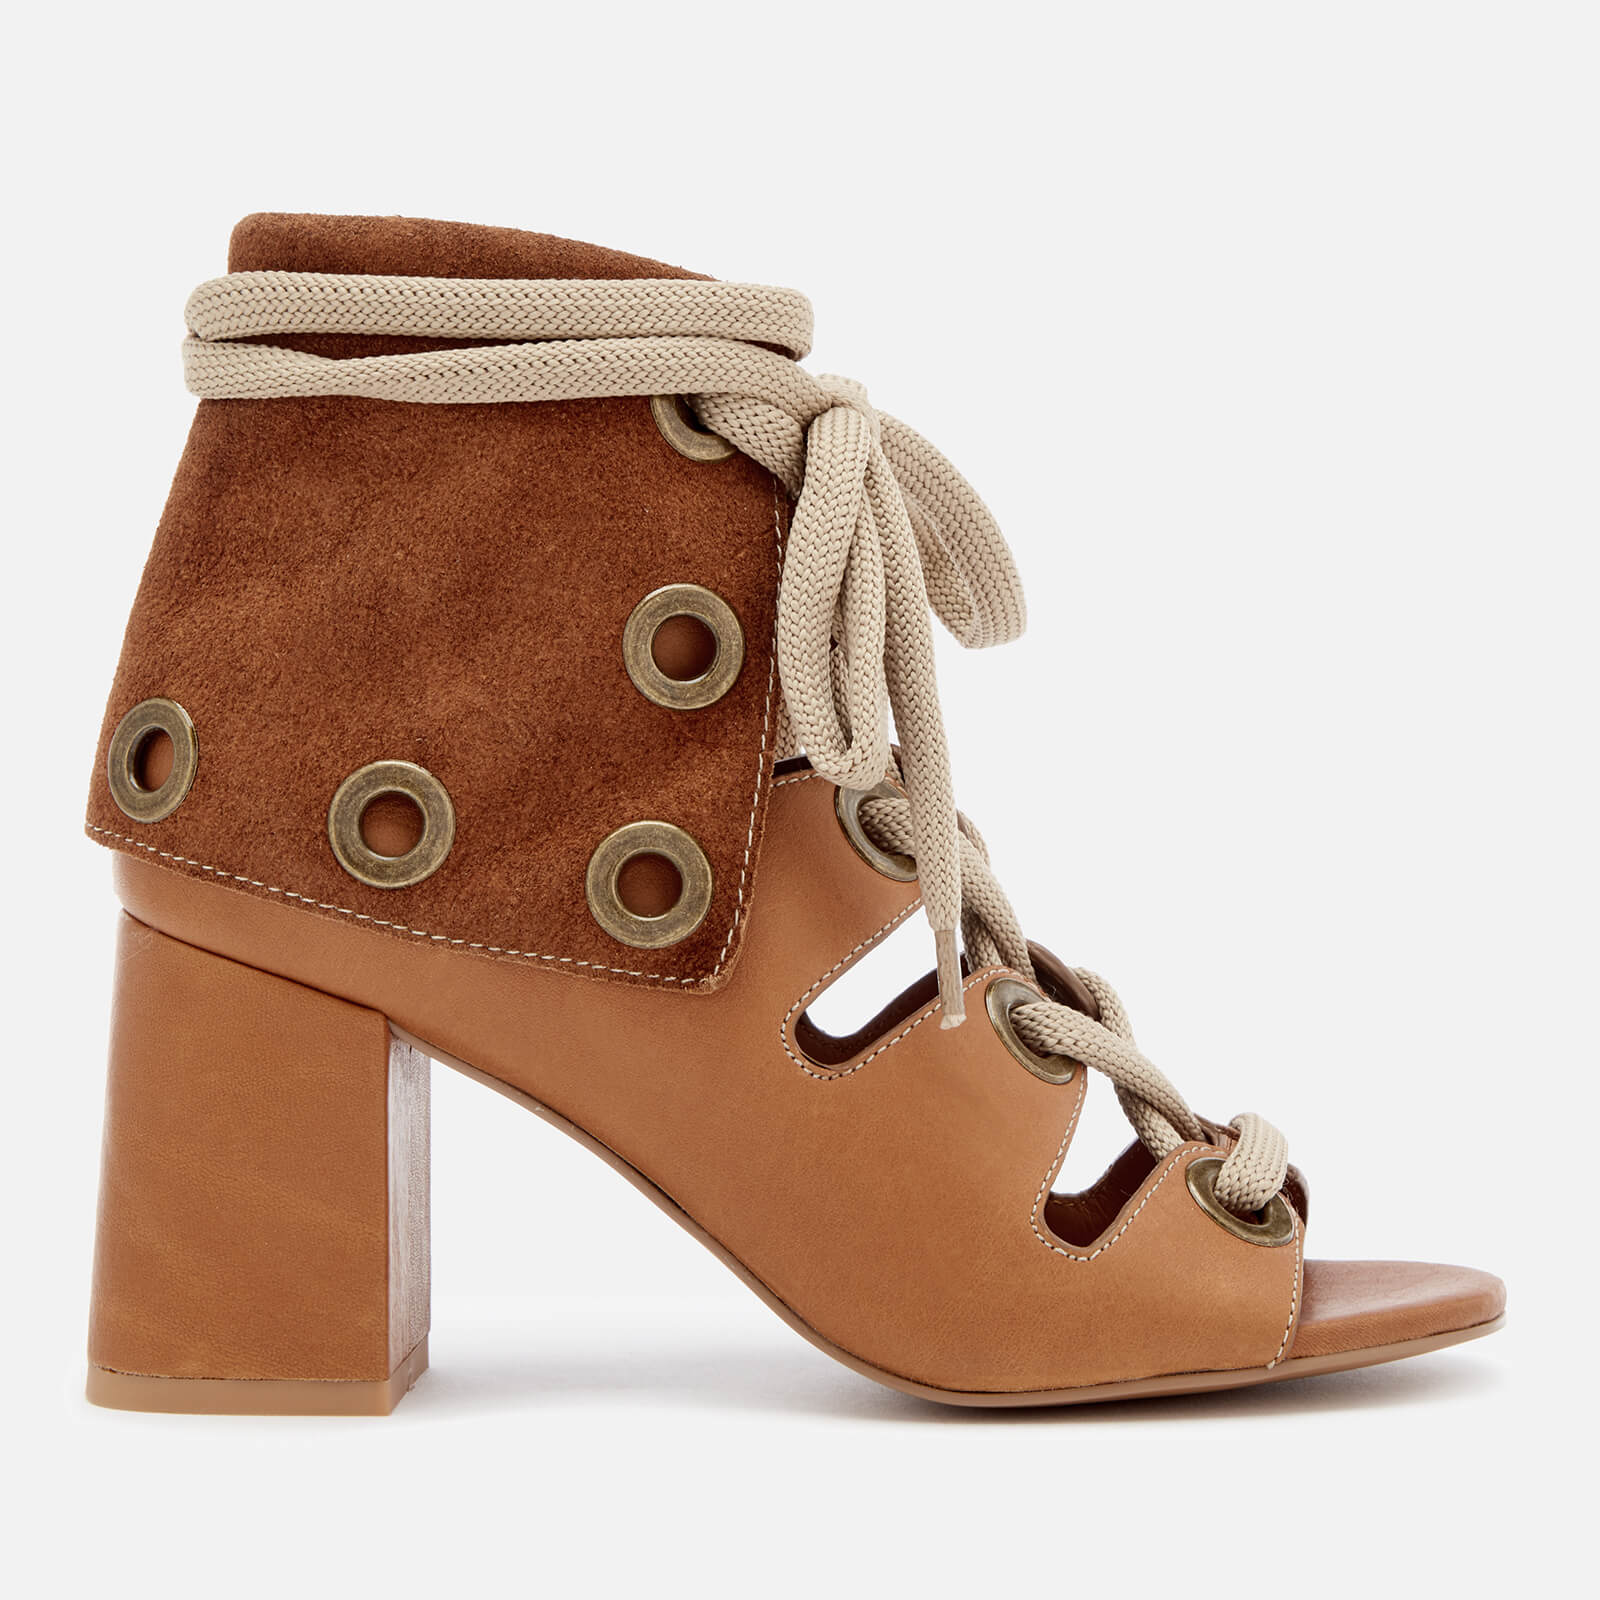 58156b962234 See By Chloé Women s Calf Leather Heeled Sandals - Cuoio - Free UK Delivery  over £50